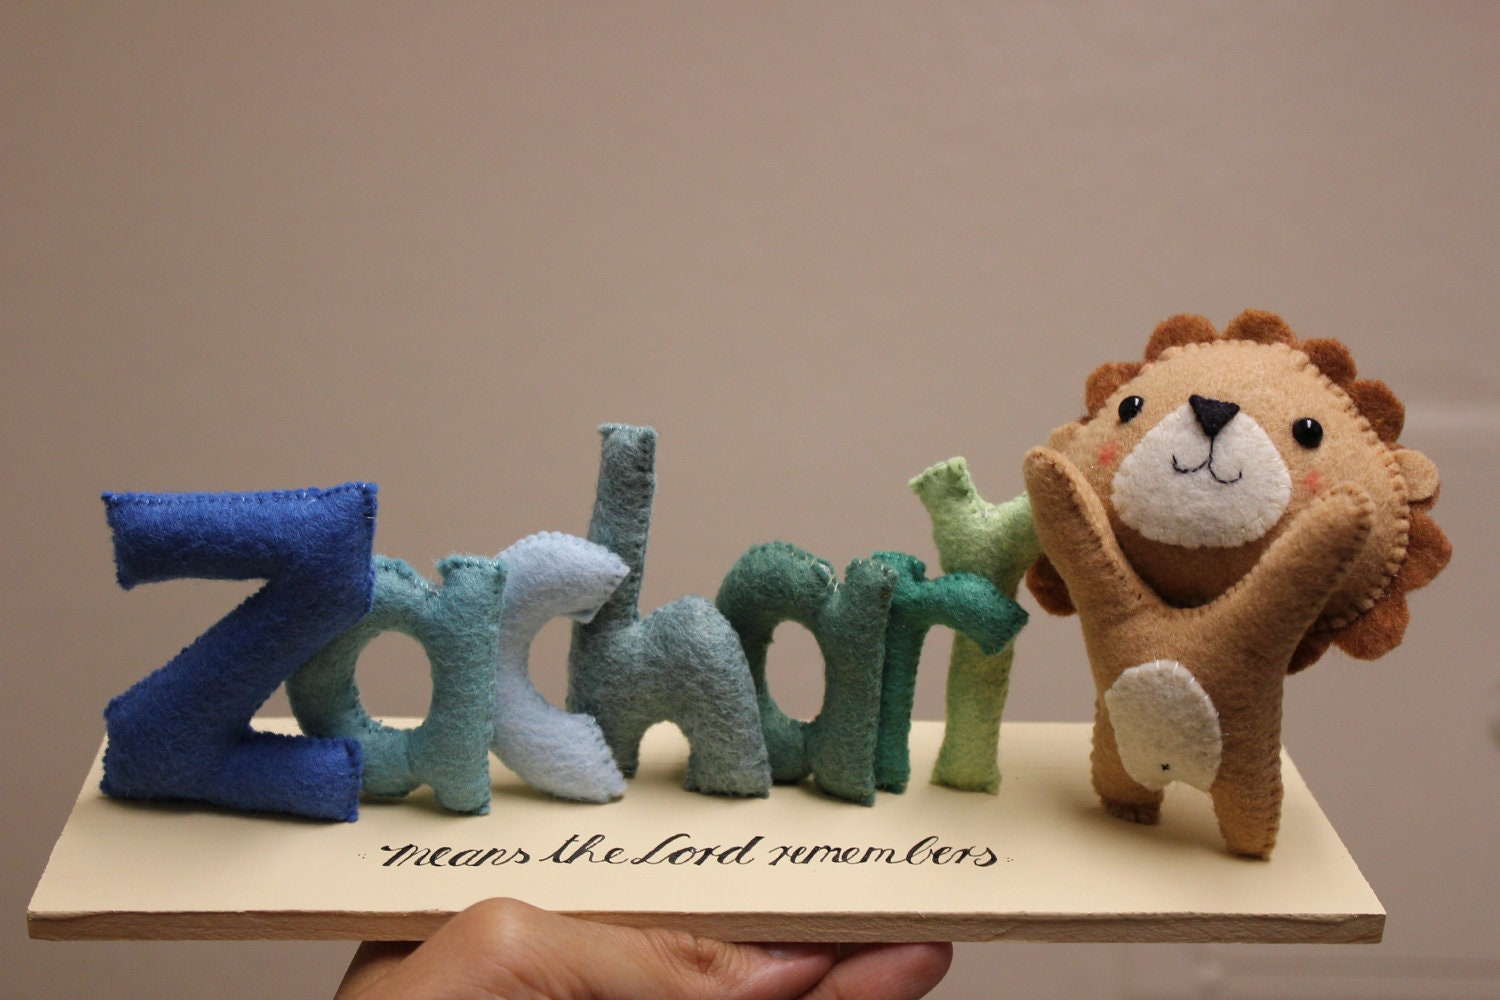 Popular items for baby decor on Etsy